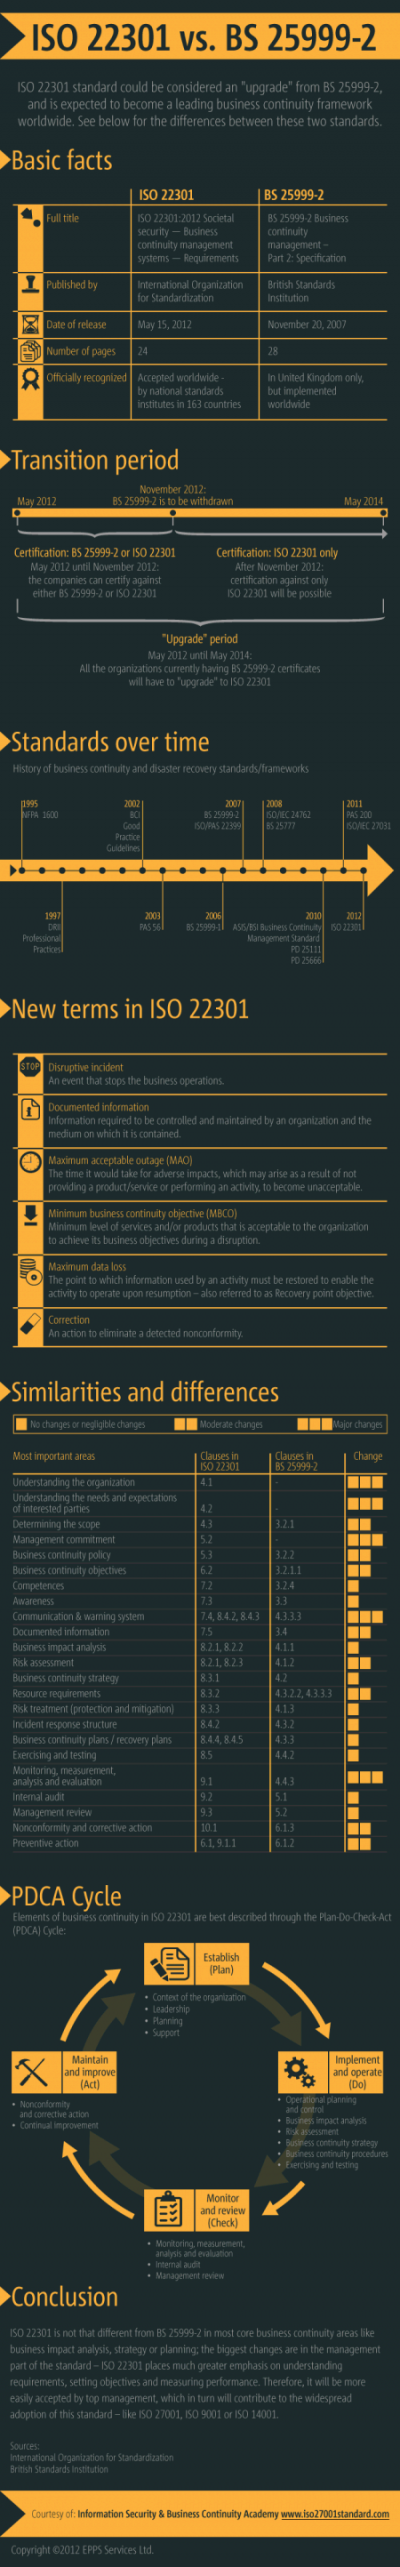 ISO 22301 vs. BS 25999-2 - An Infographic